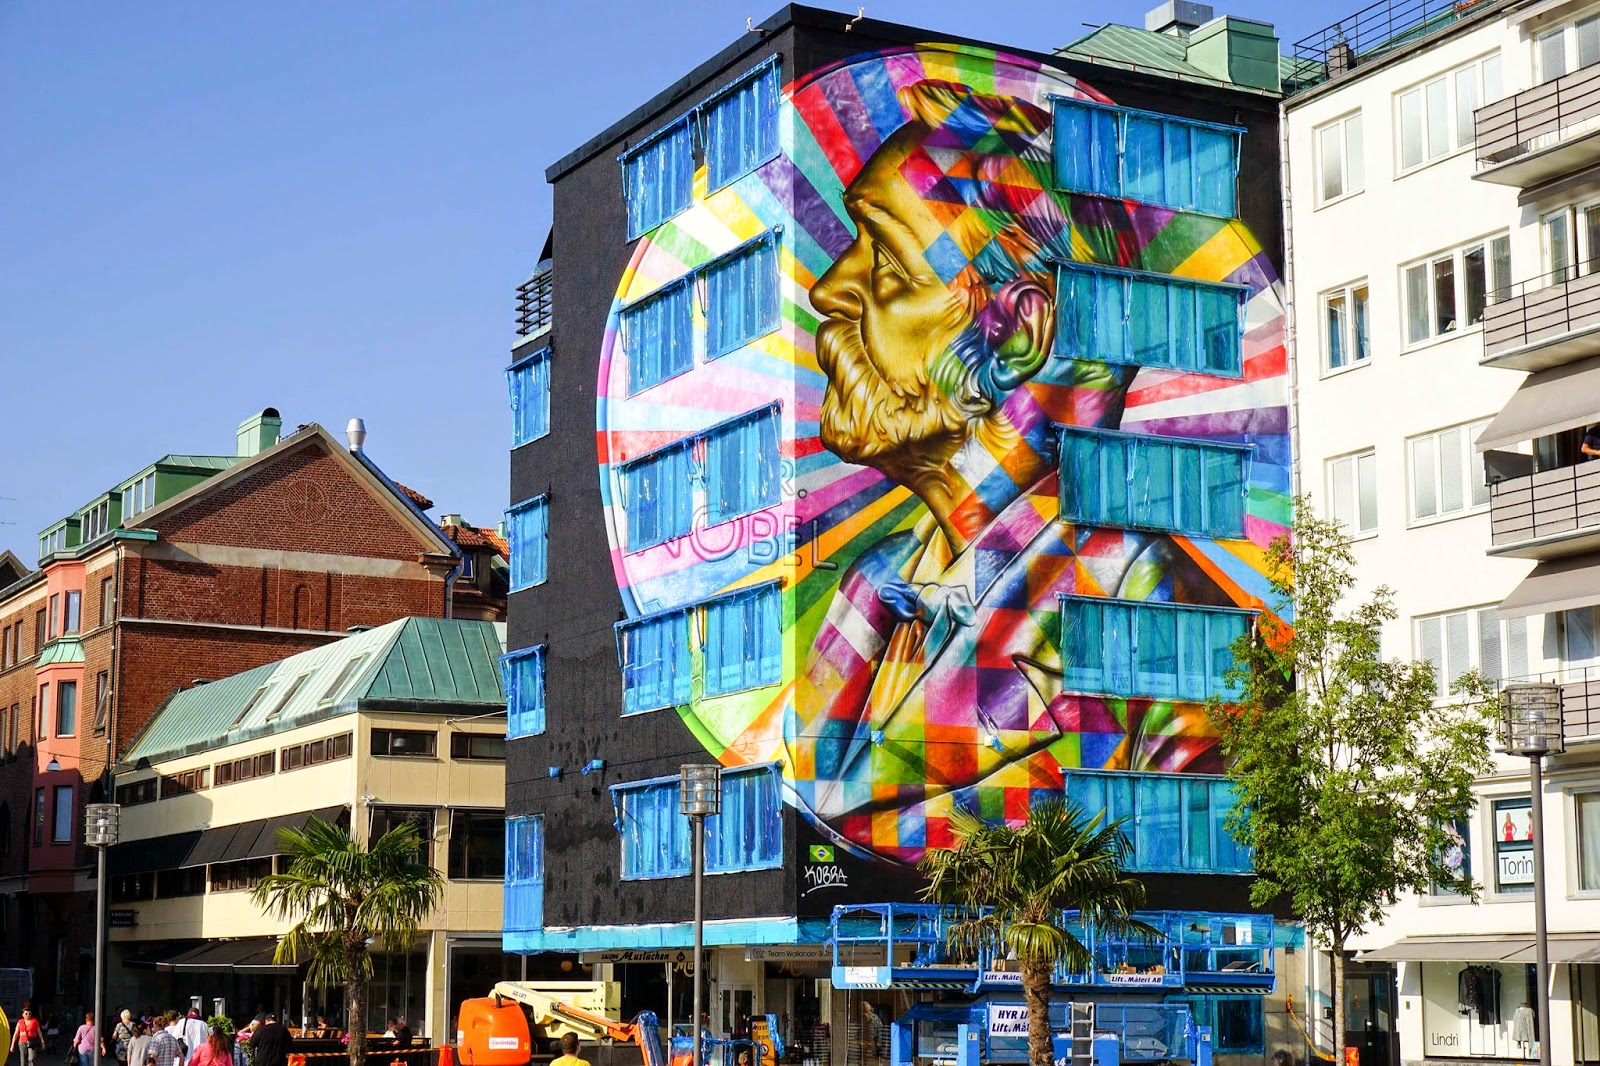 Along with a stellar line-up such as Etam Cru or Natalia Rak, Eduardo Kobra is also in Sweden where he was invited to paint for the No Limit Boras festival.